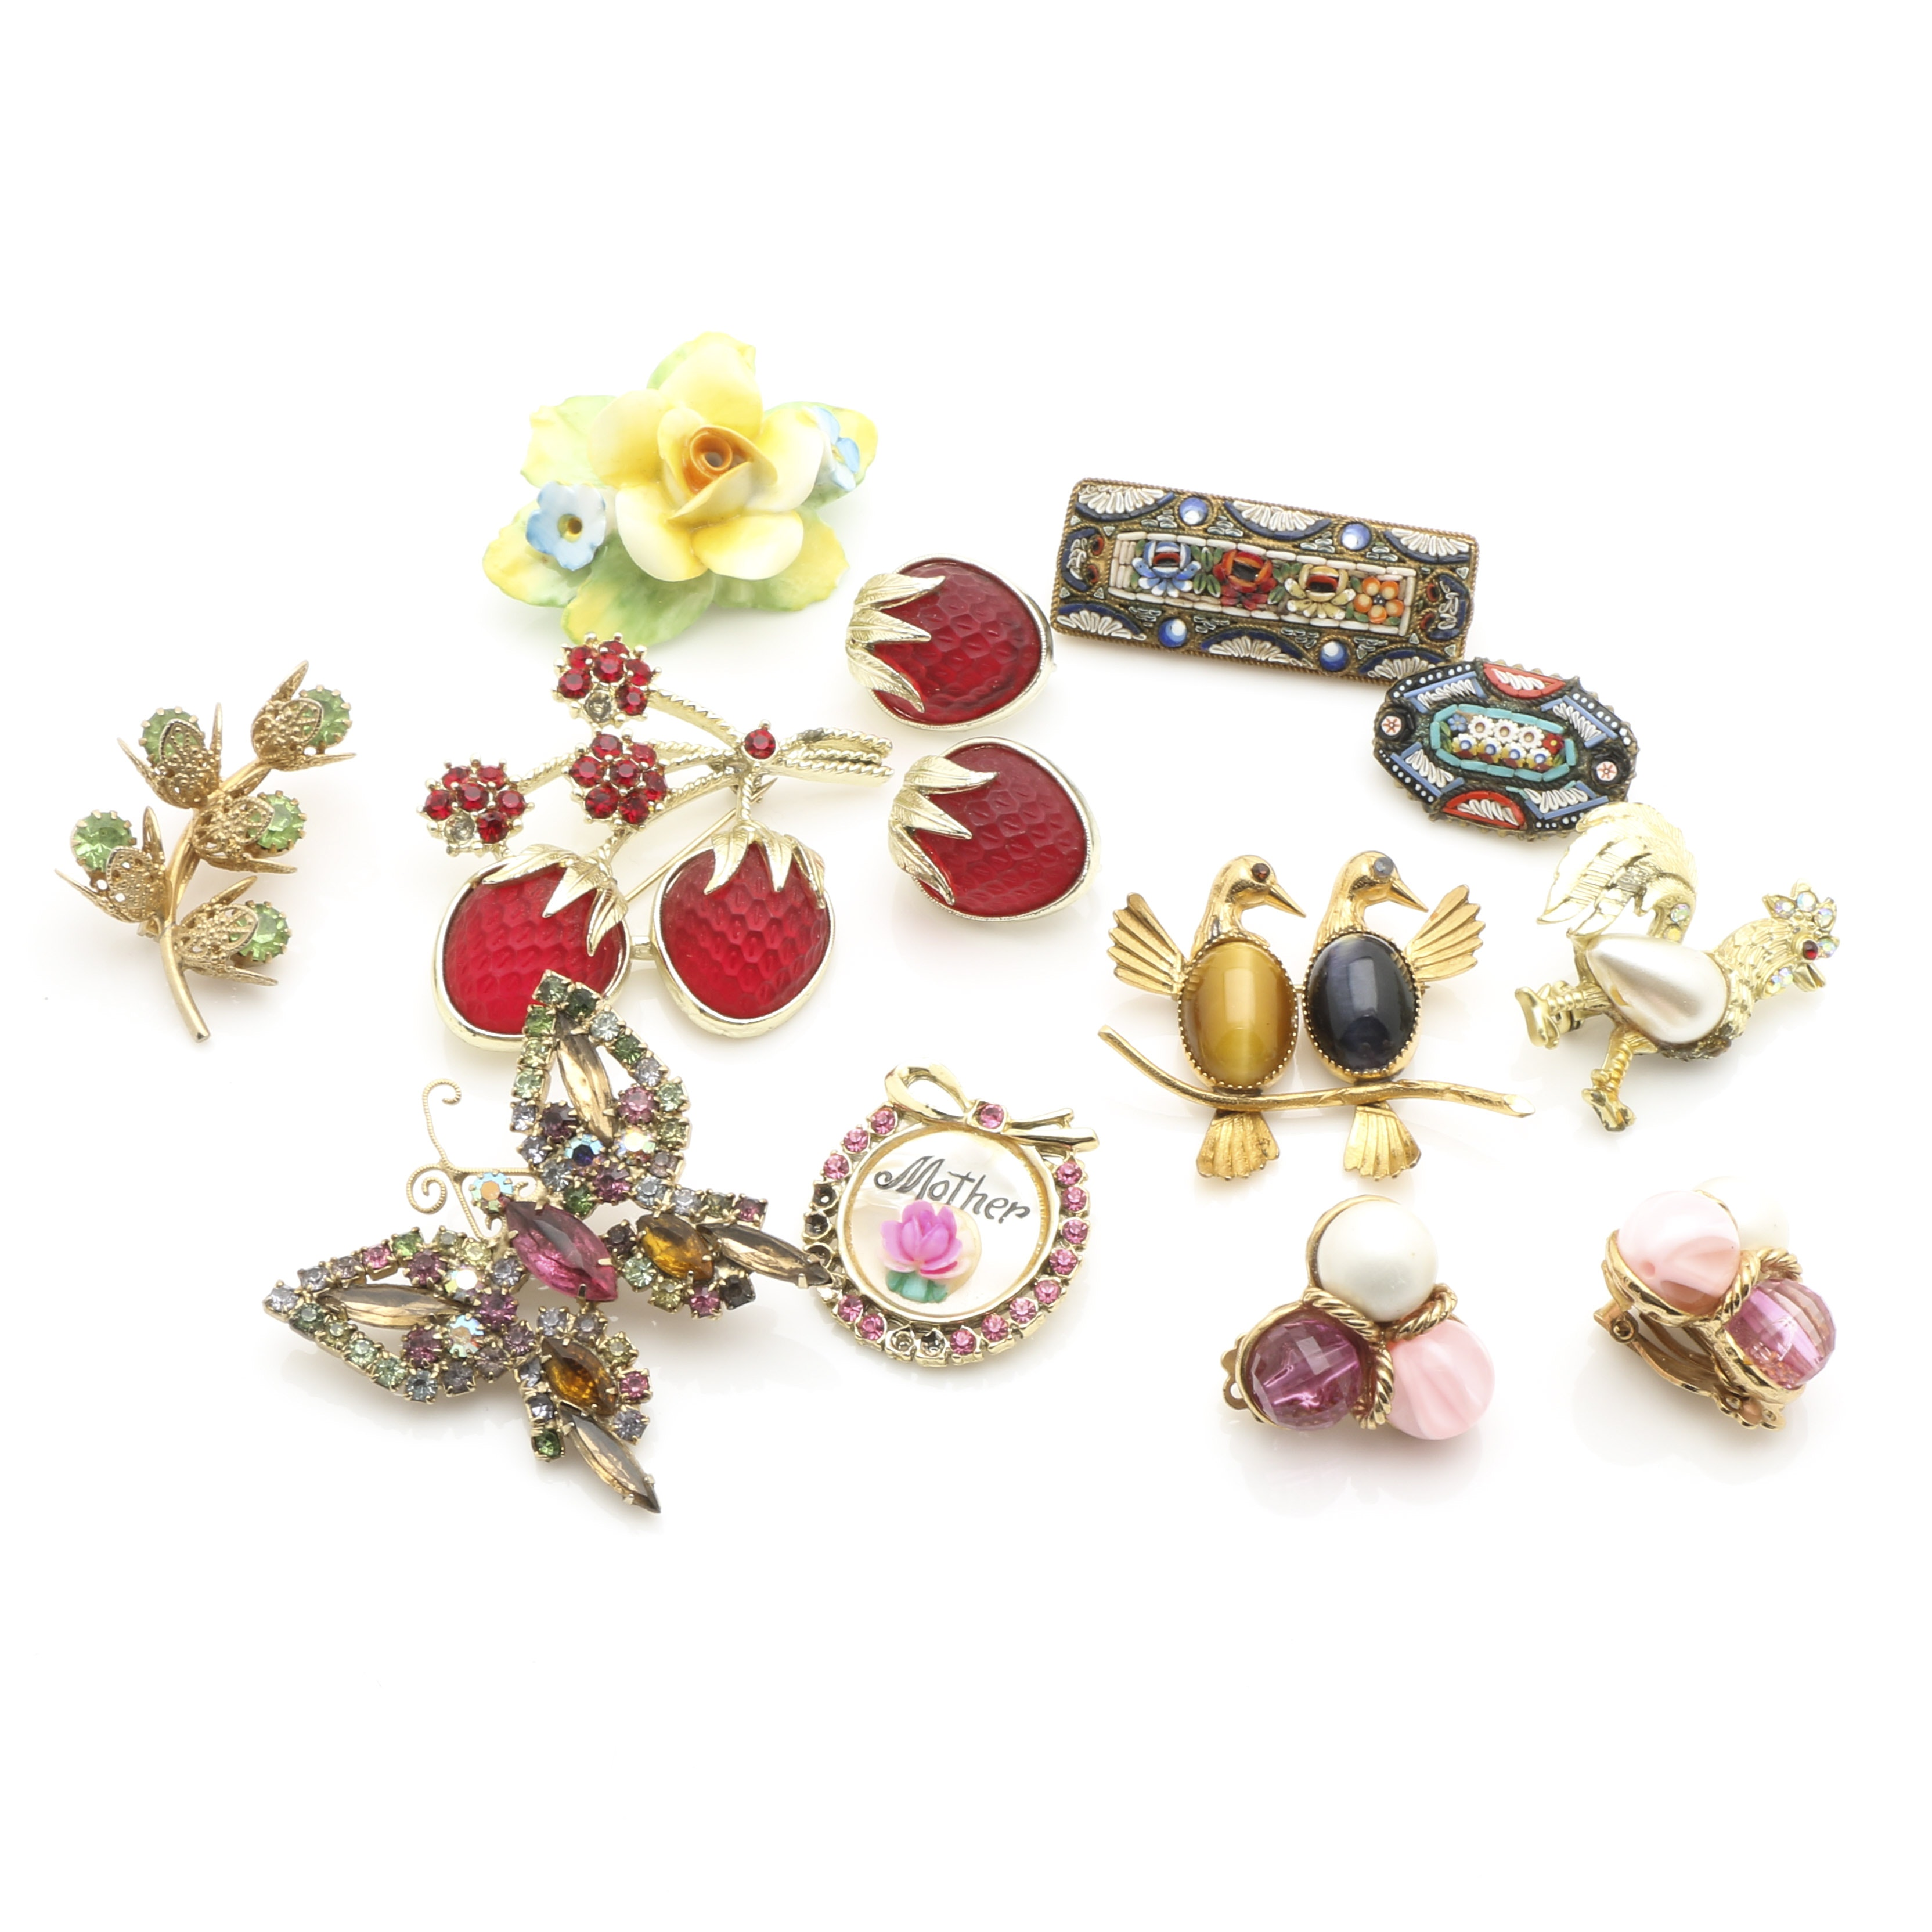 Assortment of Colorful Gold & Silver Tone Gemstone Brooches and Earrings